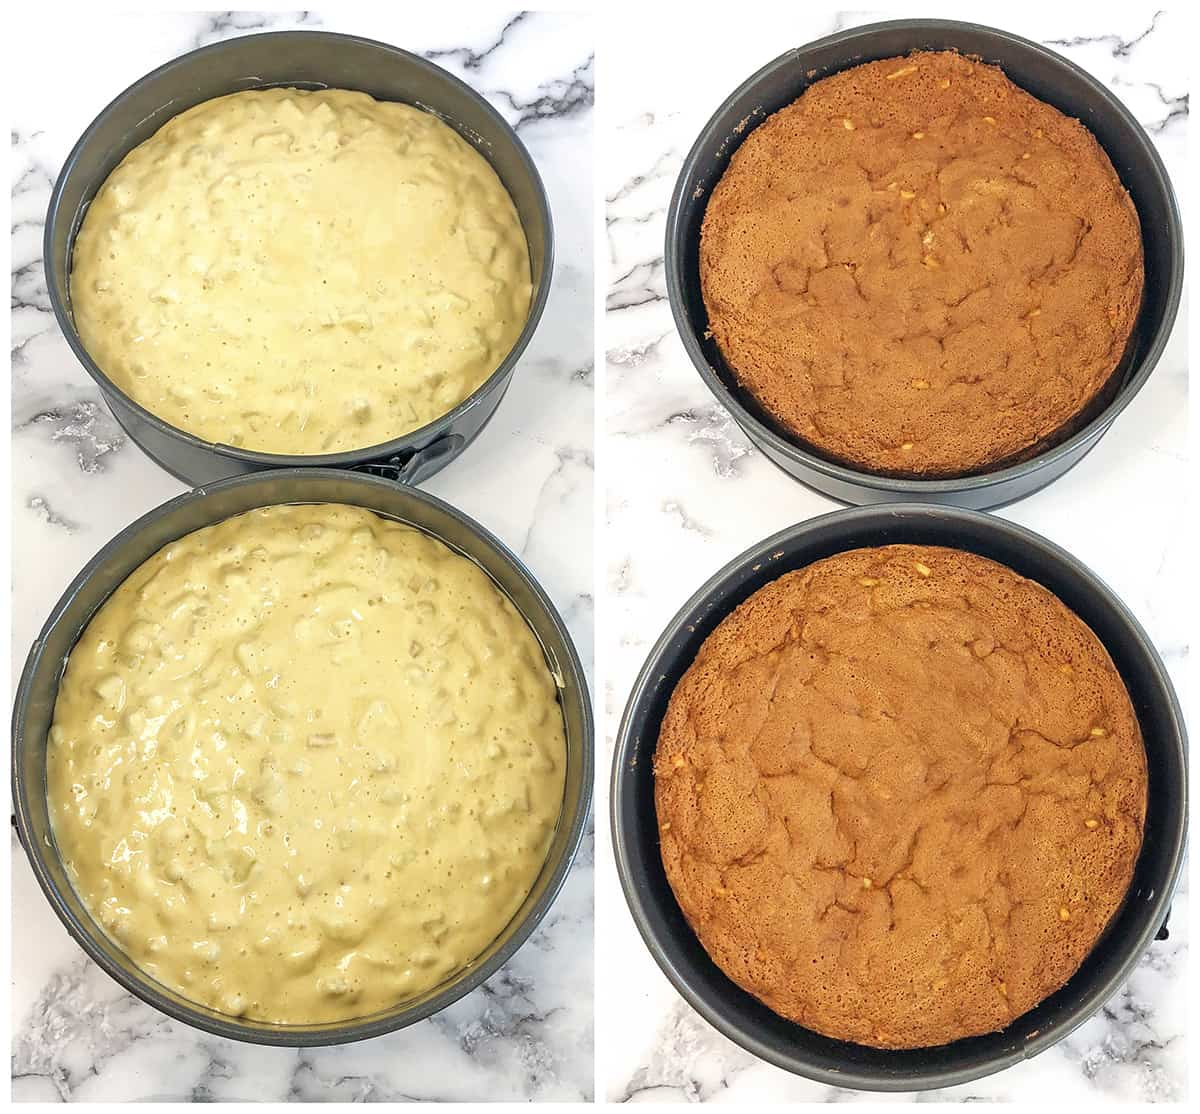 Split the batter between two greased pans, in equal portions. Bake for 50 minutes at 300 F.